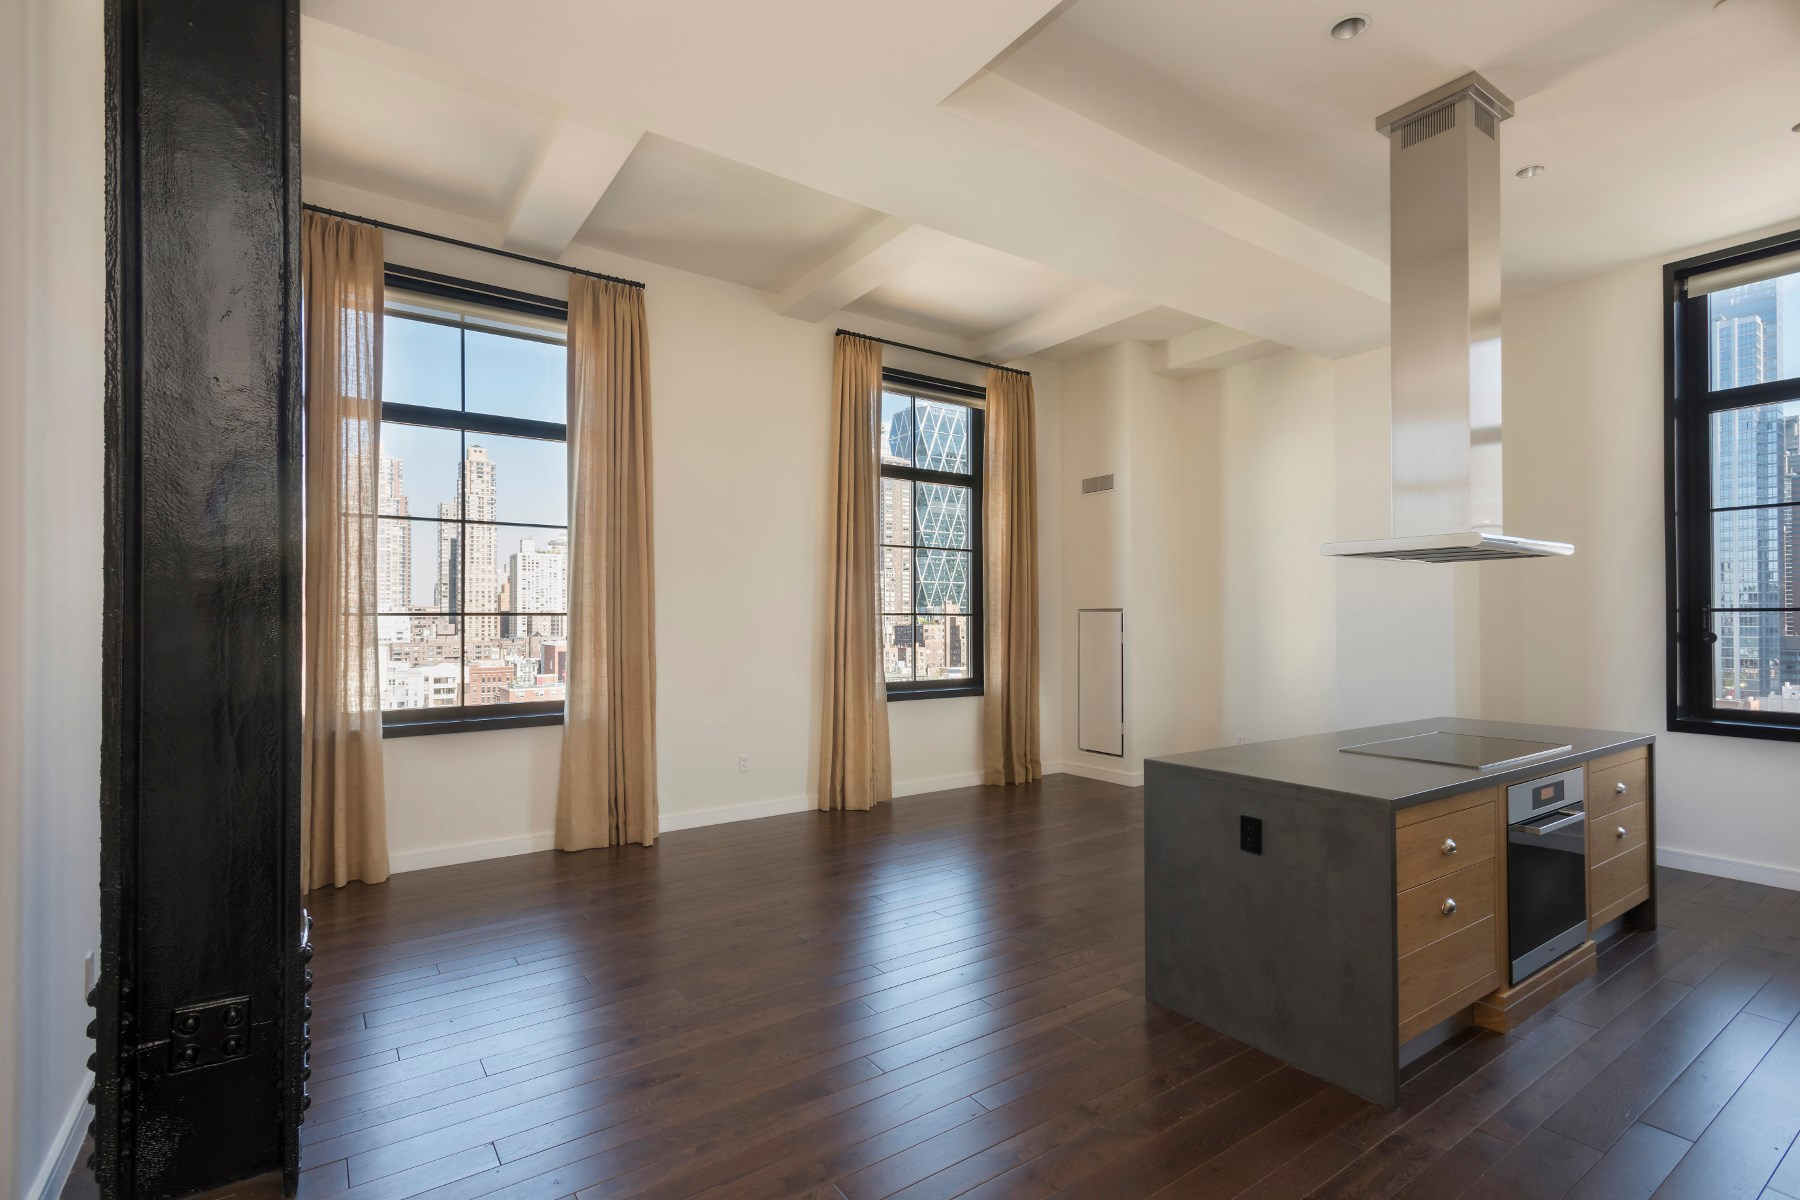 Condominio por un Venta en 425 West 50th Street, Apt 11F 425 West 50th Street Apt 11F New York, Nueva York, 10019 Estados Unidos